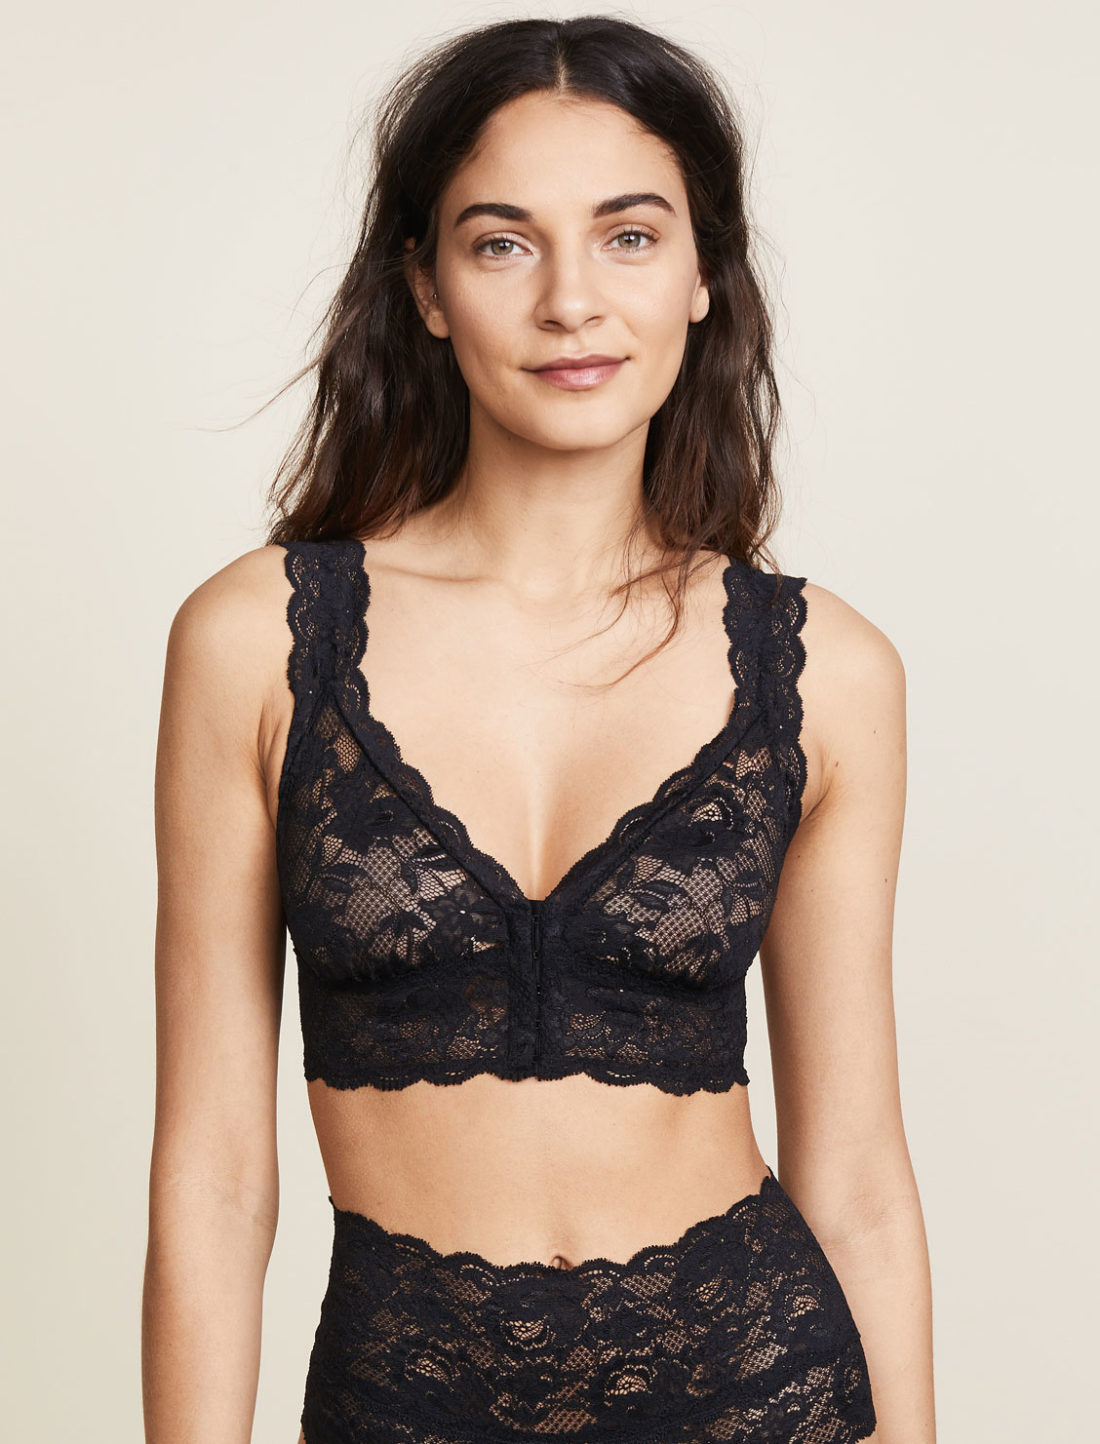 Cosabella Never Say Never Happie Front Closure Bra - Shopbop sale recommendations by popular North Carolina fashion blogger Glitter, Inc.